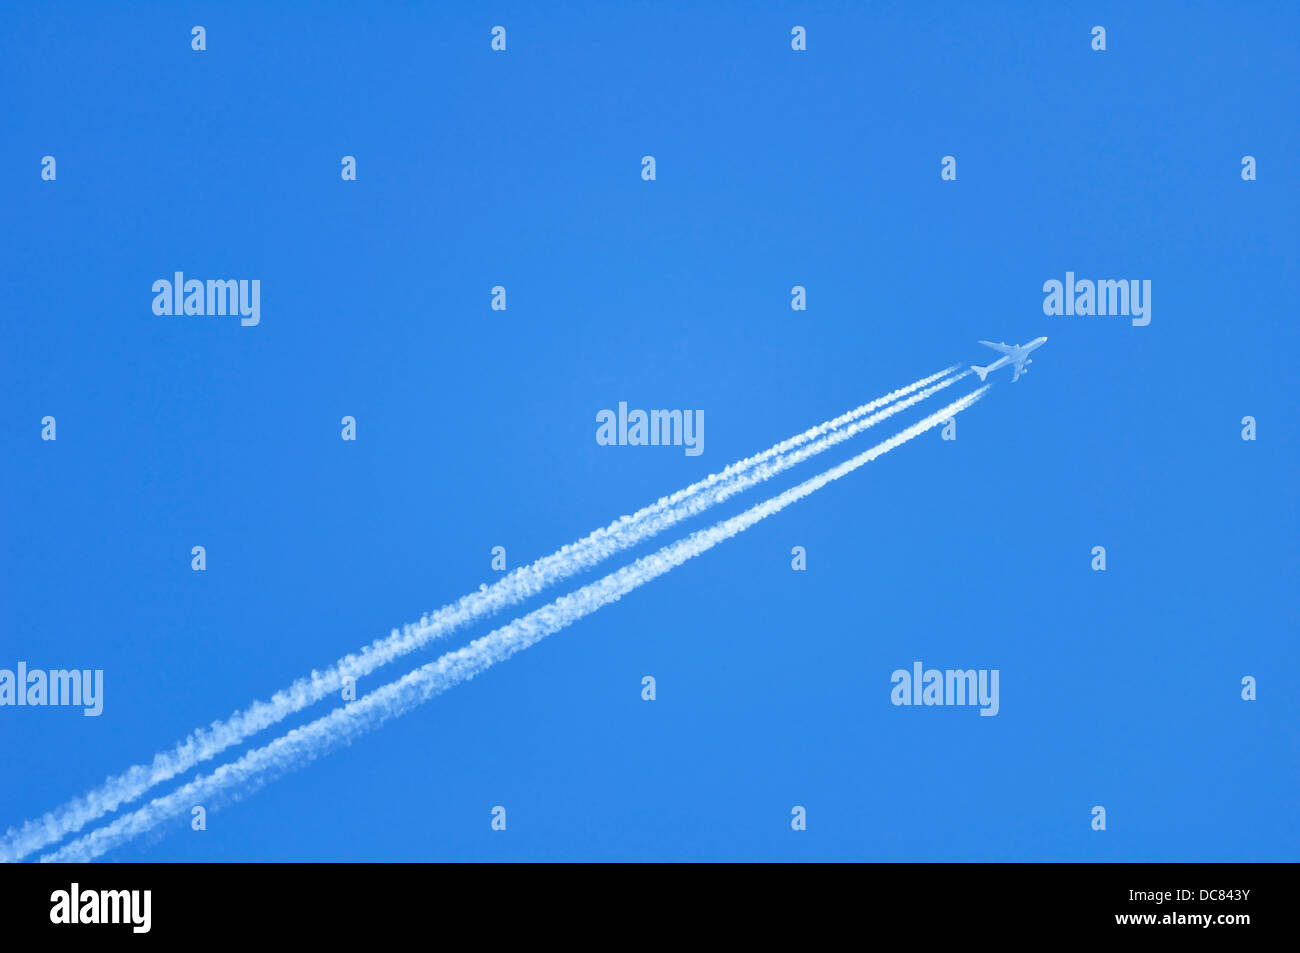 Contrails / Jet vapour trail of an airplane - Stock Image